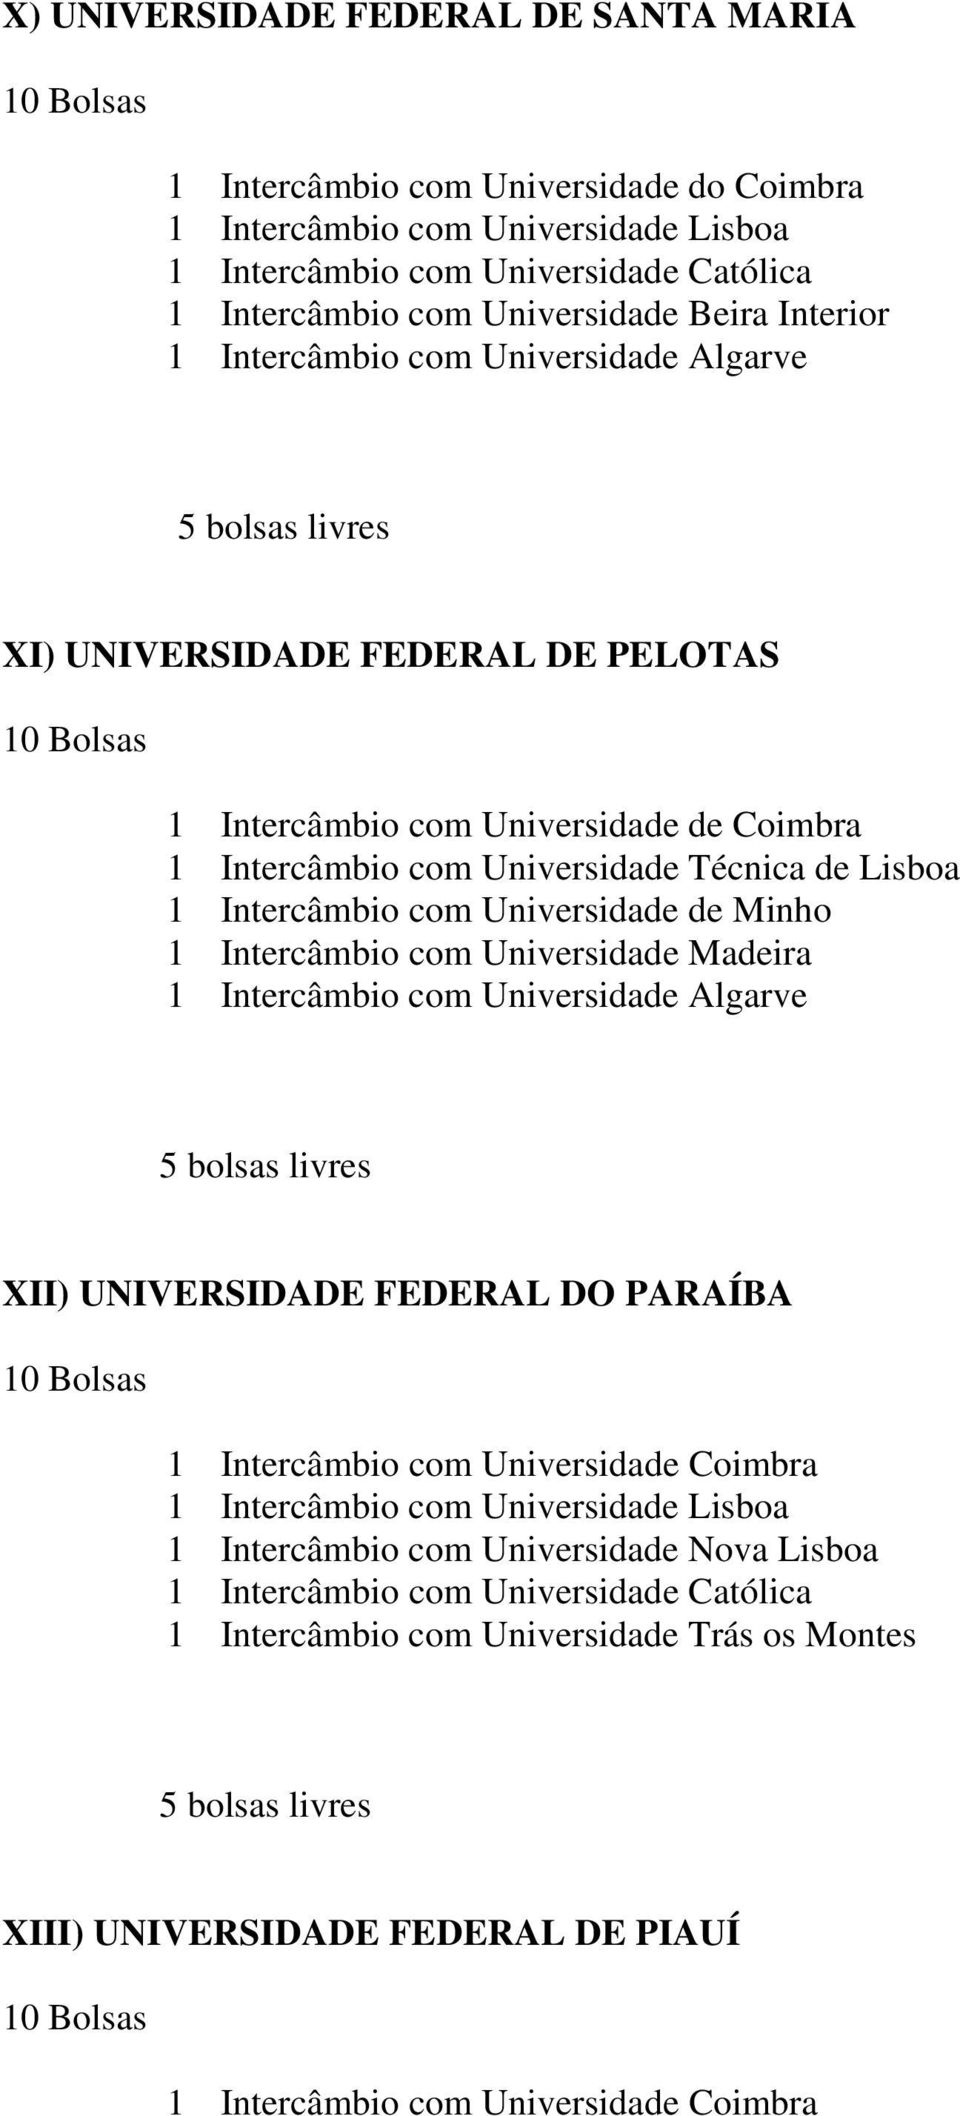 Universidade Madeira 1 Intercâmbio com Universidade Algarve XII) UNIVERSIDADE FEDERAL DO PARAÍBA 1 Intercâmbio com Universidade Coimbra 1 Intercâmbio com Universidade Lisboa 1 Intercâmbio